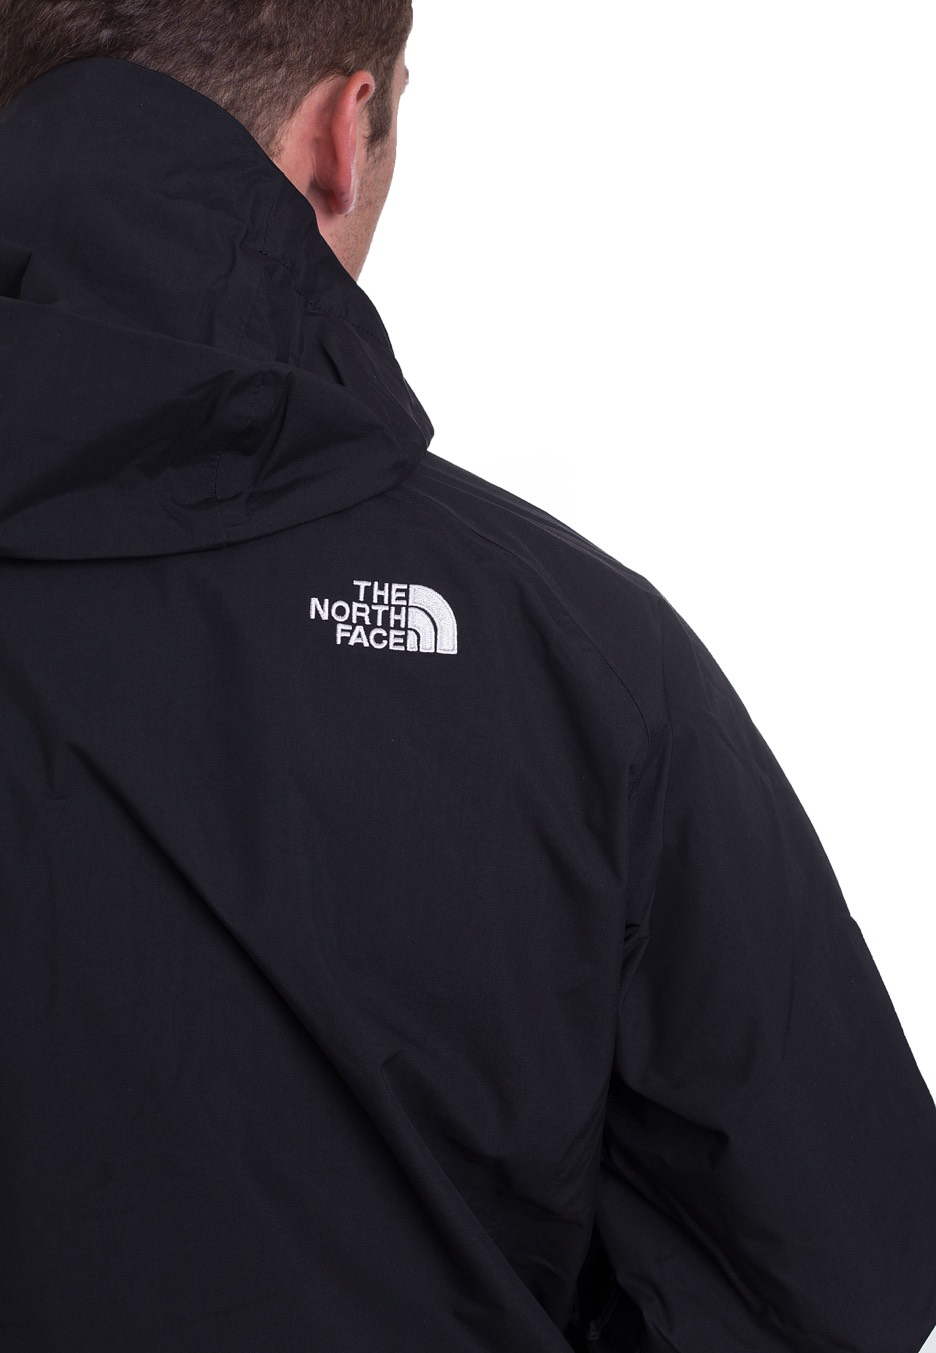 Black Stratos Tnf Shop The Streetwear Face Jacke North SaqHHcTwB